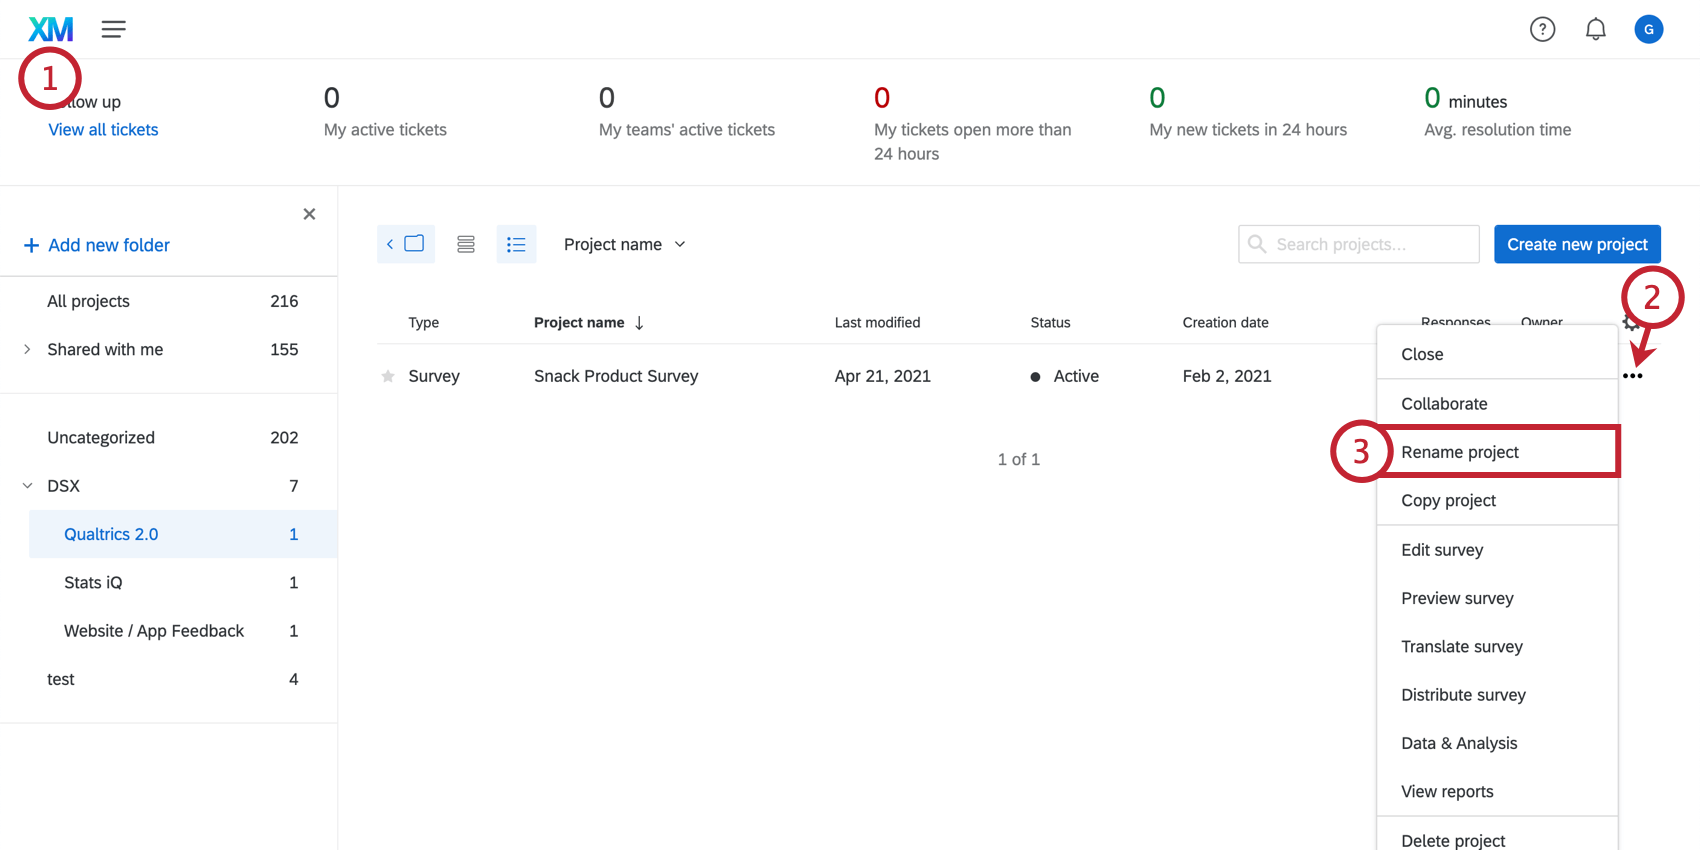 Navigating to the rename project option on the Projects page; open the dropdown menu on your survey by clicking the three dots on the far right